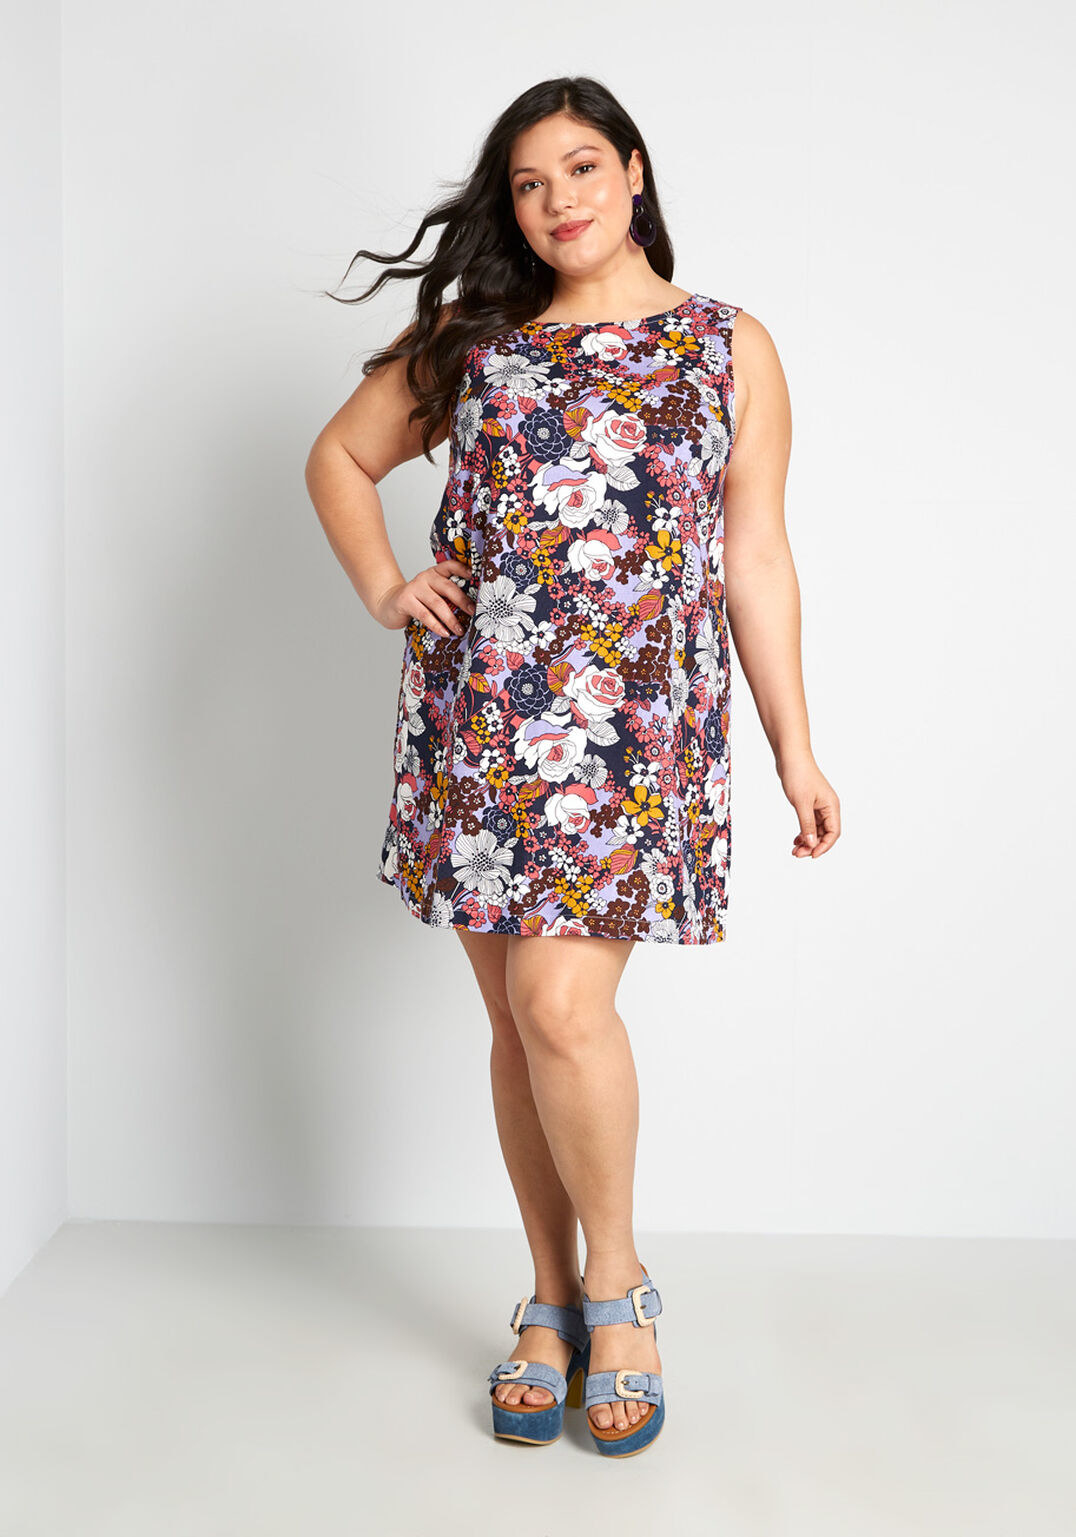 a model wearing the shift dress that is covered in an array of hand drawn blue, purple, white, burgundy, and yellow flowers